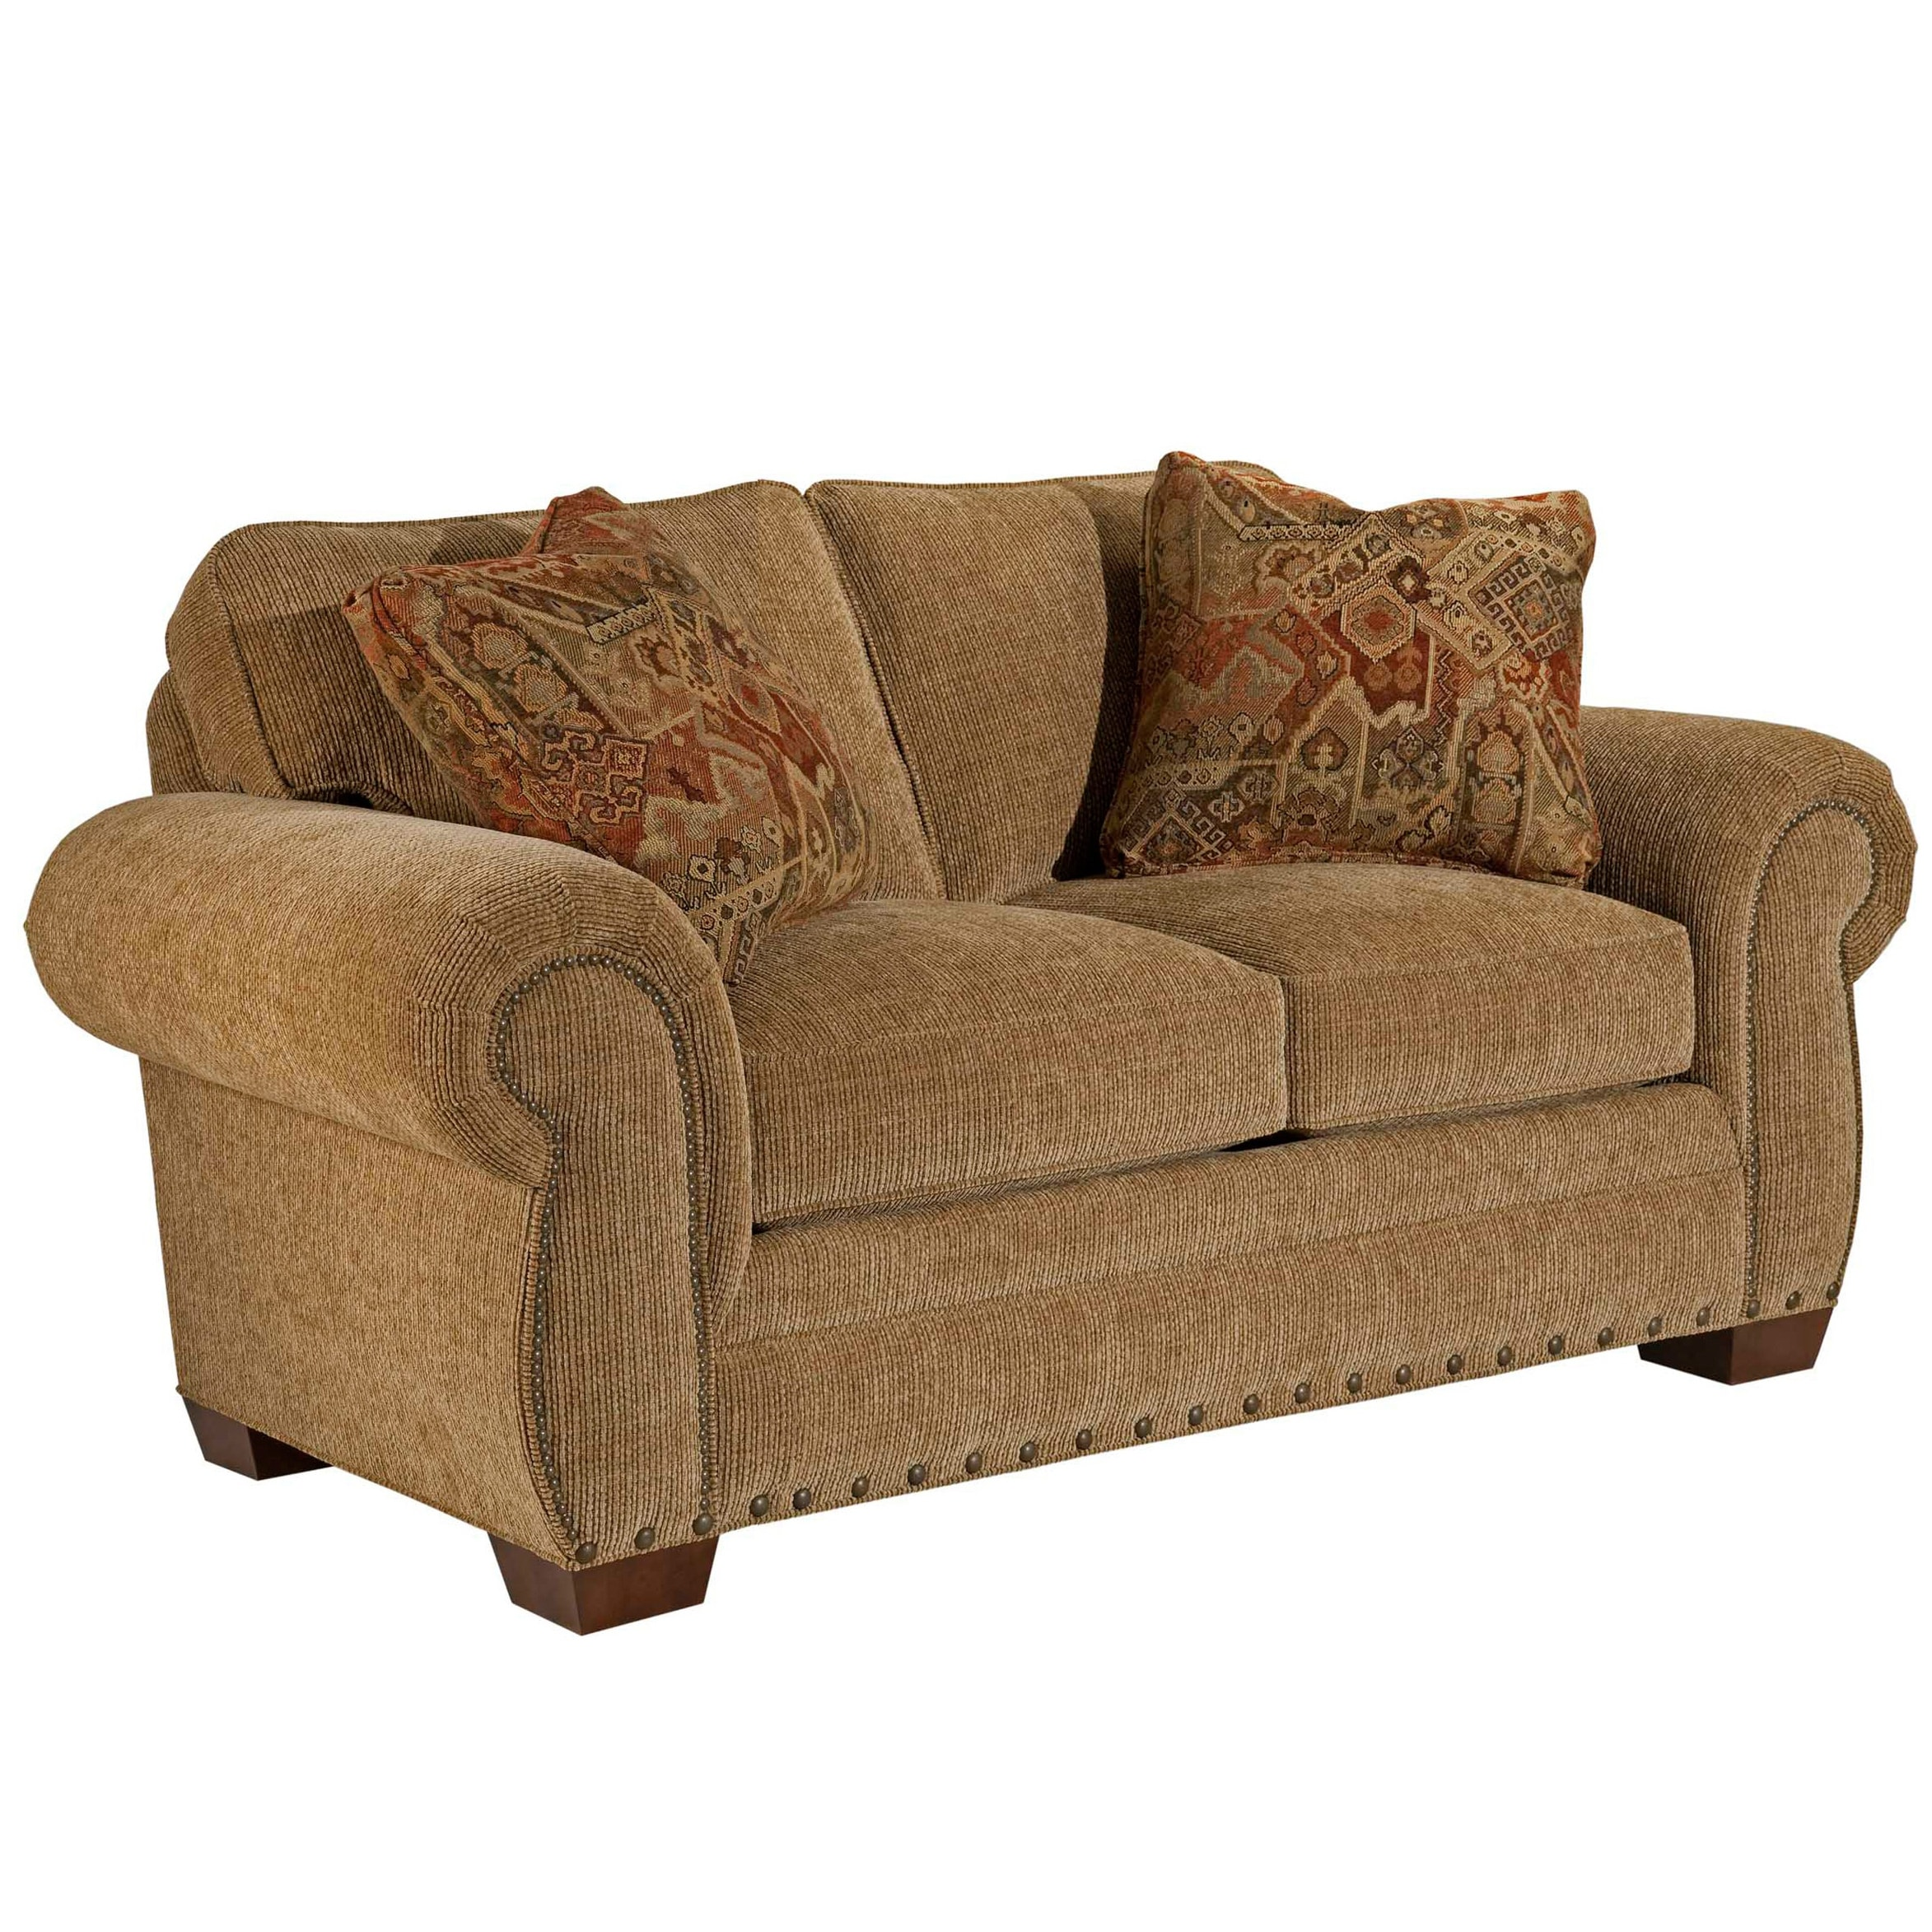 Broyhill Casey Bark Loveseat and Accent Pillows